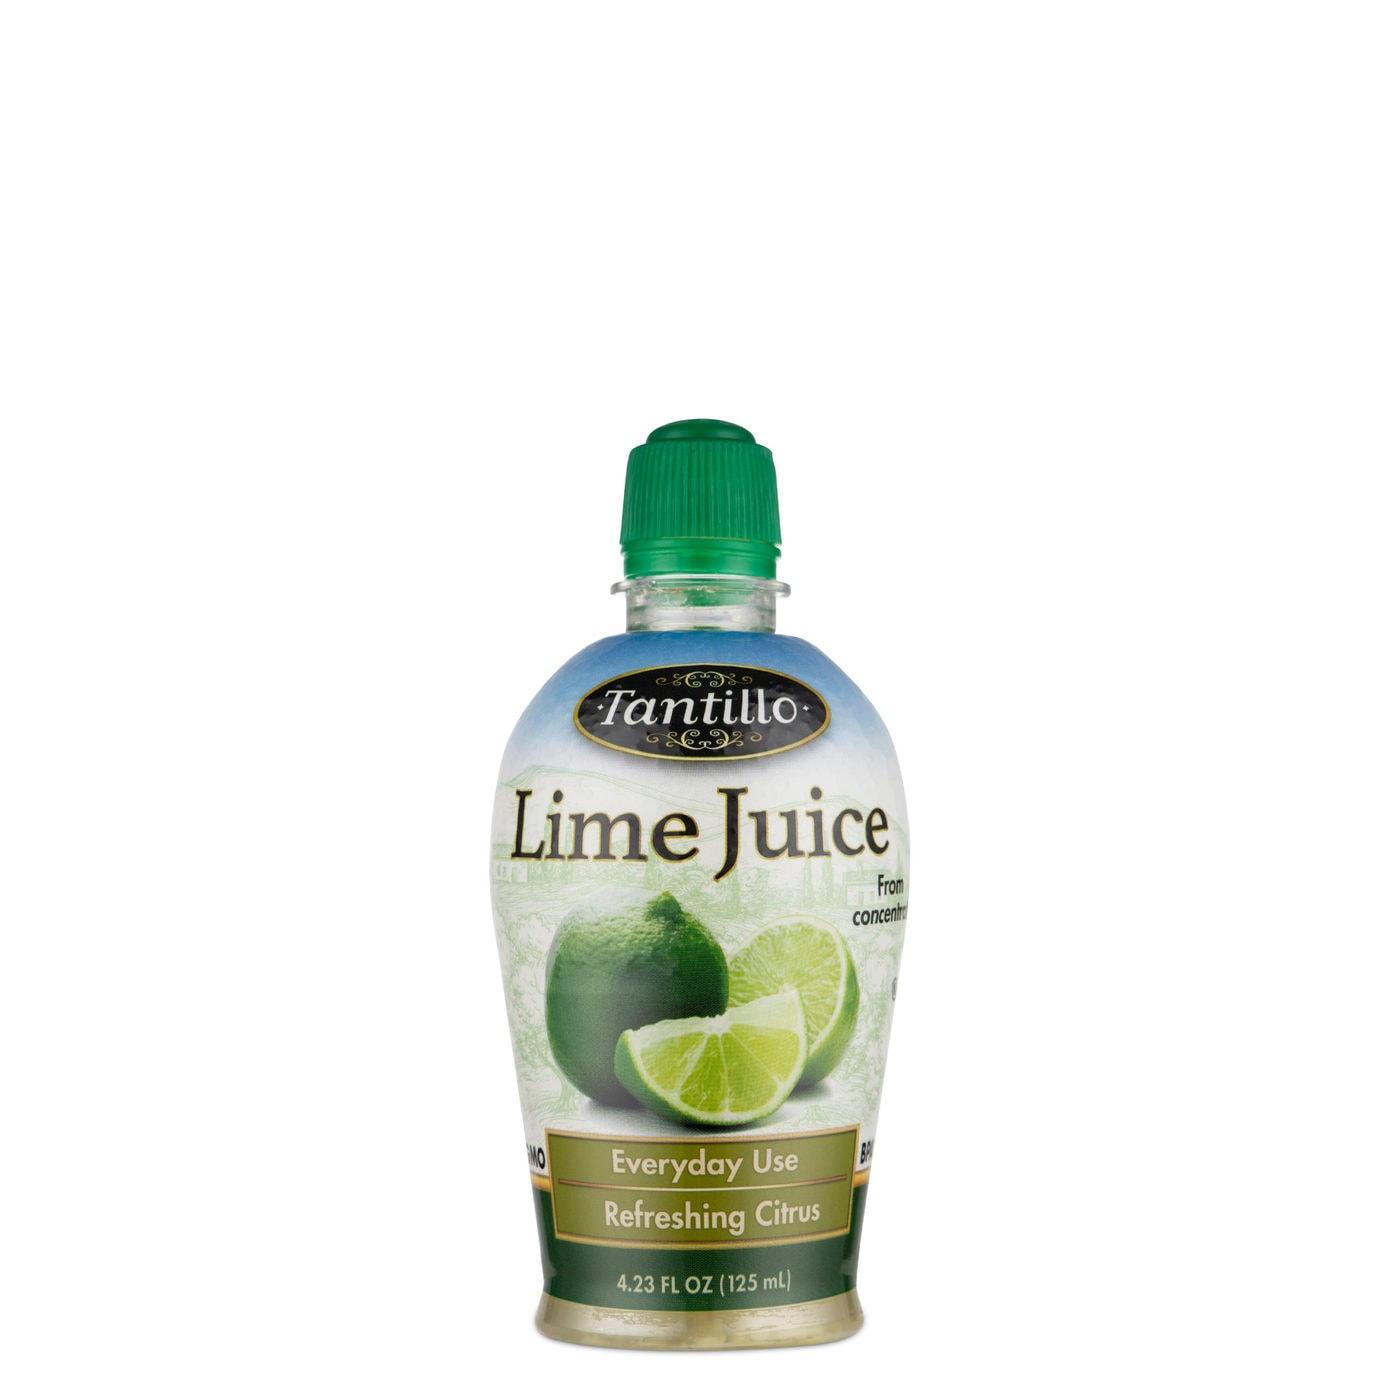 Tantillo Lime Juice from concentrate 4.23 fl oz